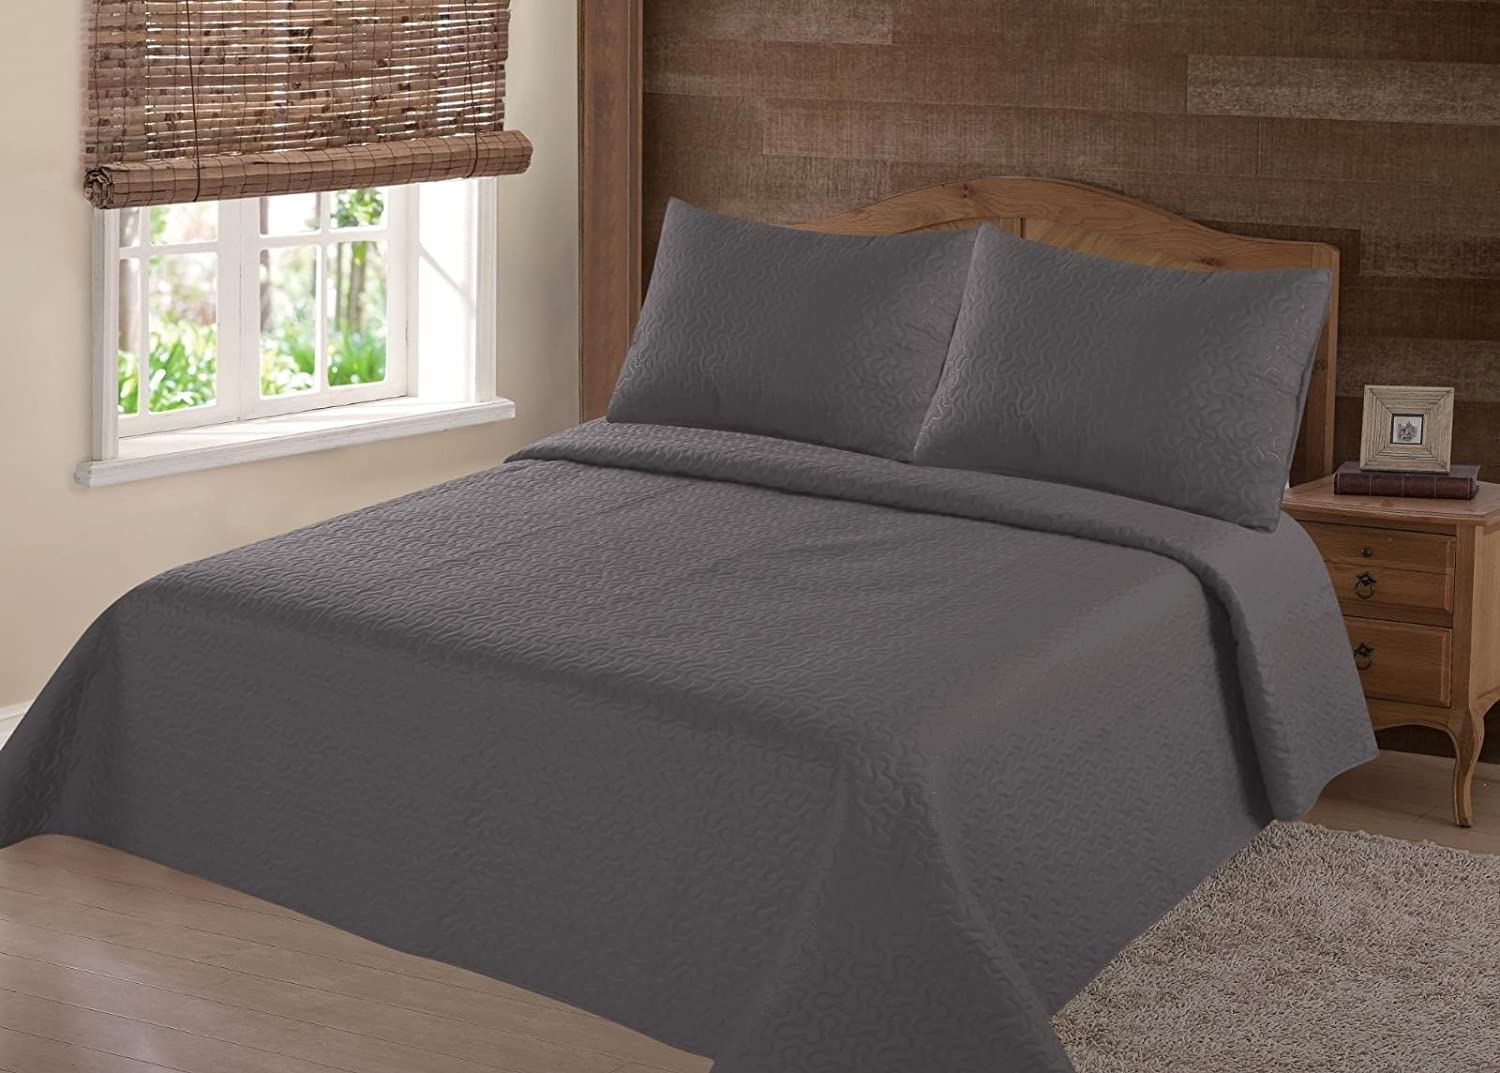 GorgeousHomeLinen (NENA) 2/3-Piece Charcoal Solid Hypoallergenic Quilt Bedspread Bed Bedding Coverlets Cover Set with Pillow Cases (Full)